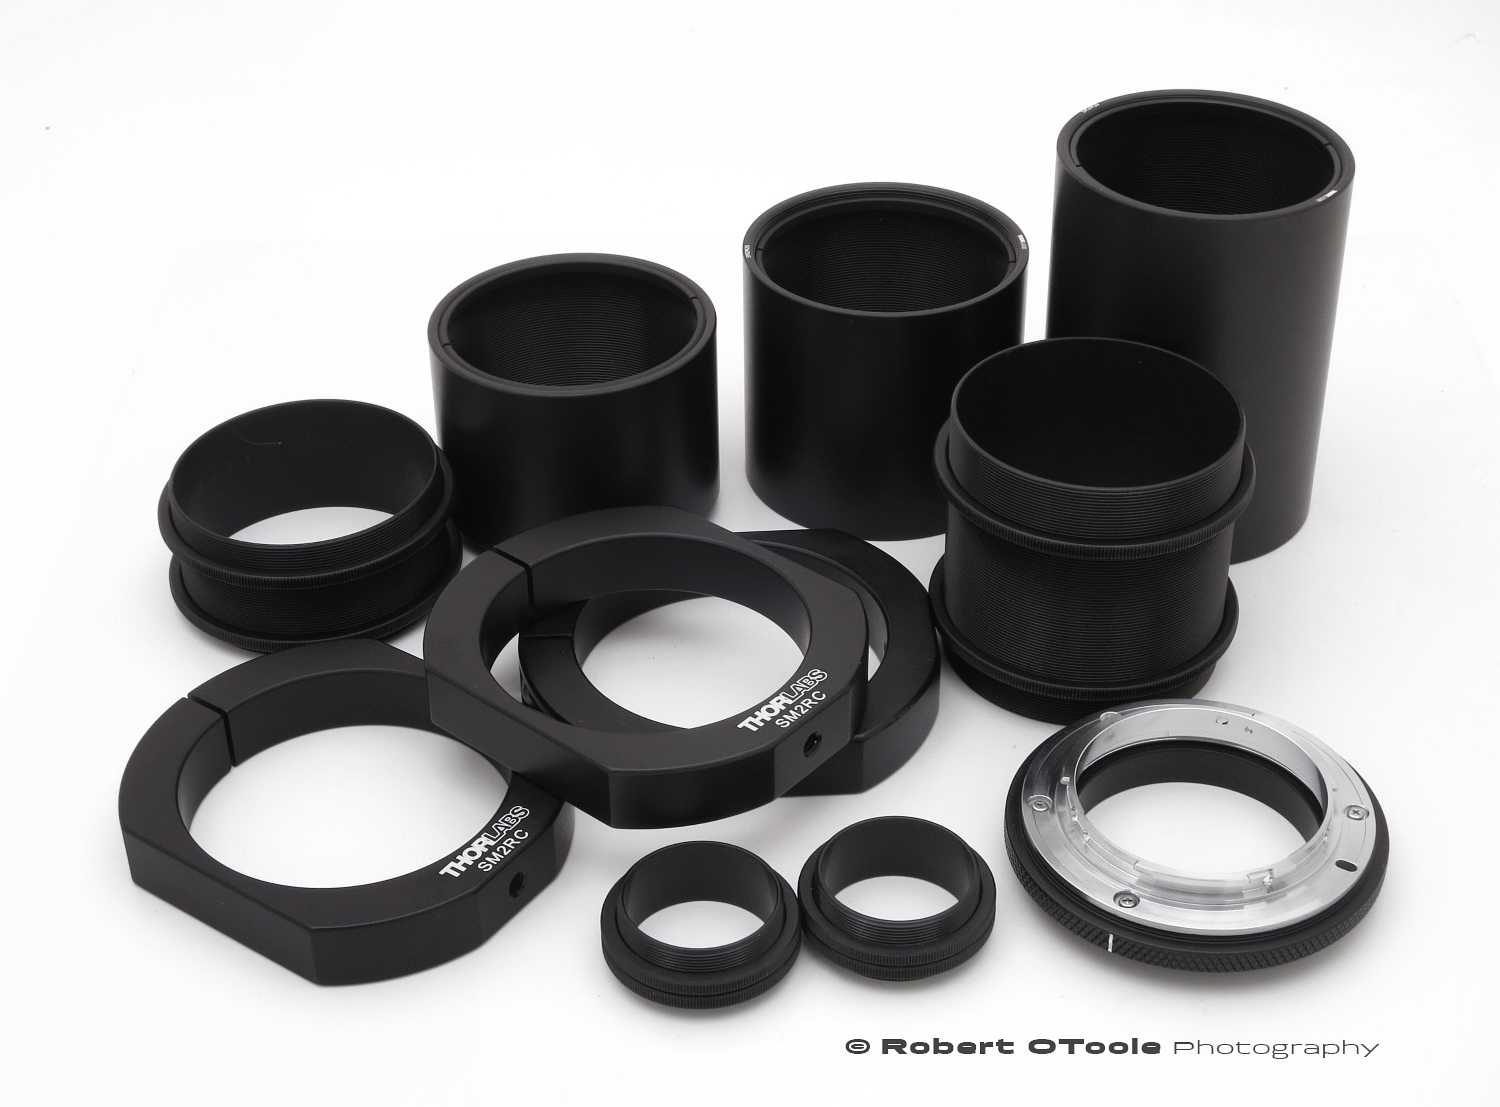 Thorlabs SM2 Tube System parts including the SM2NFM2 Nikon F-Mount adapter.